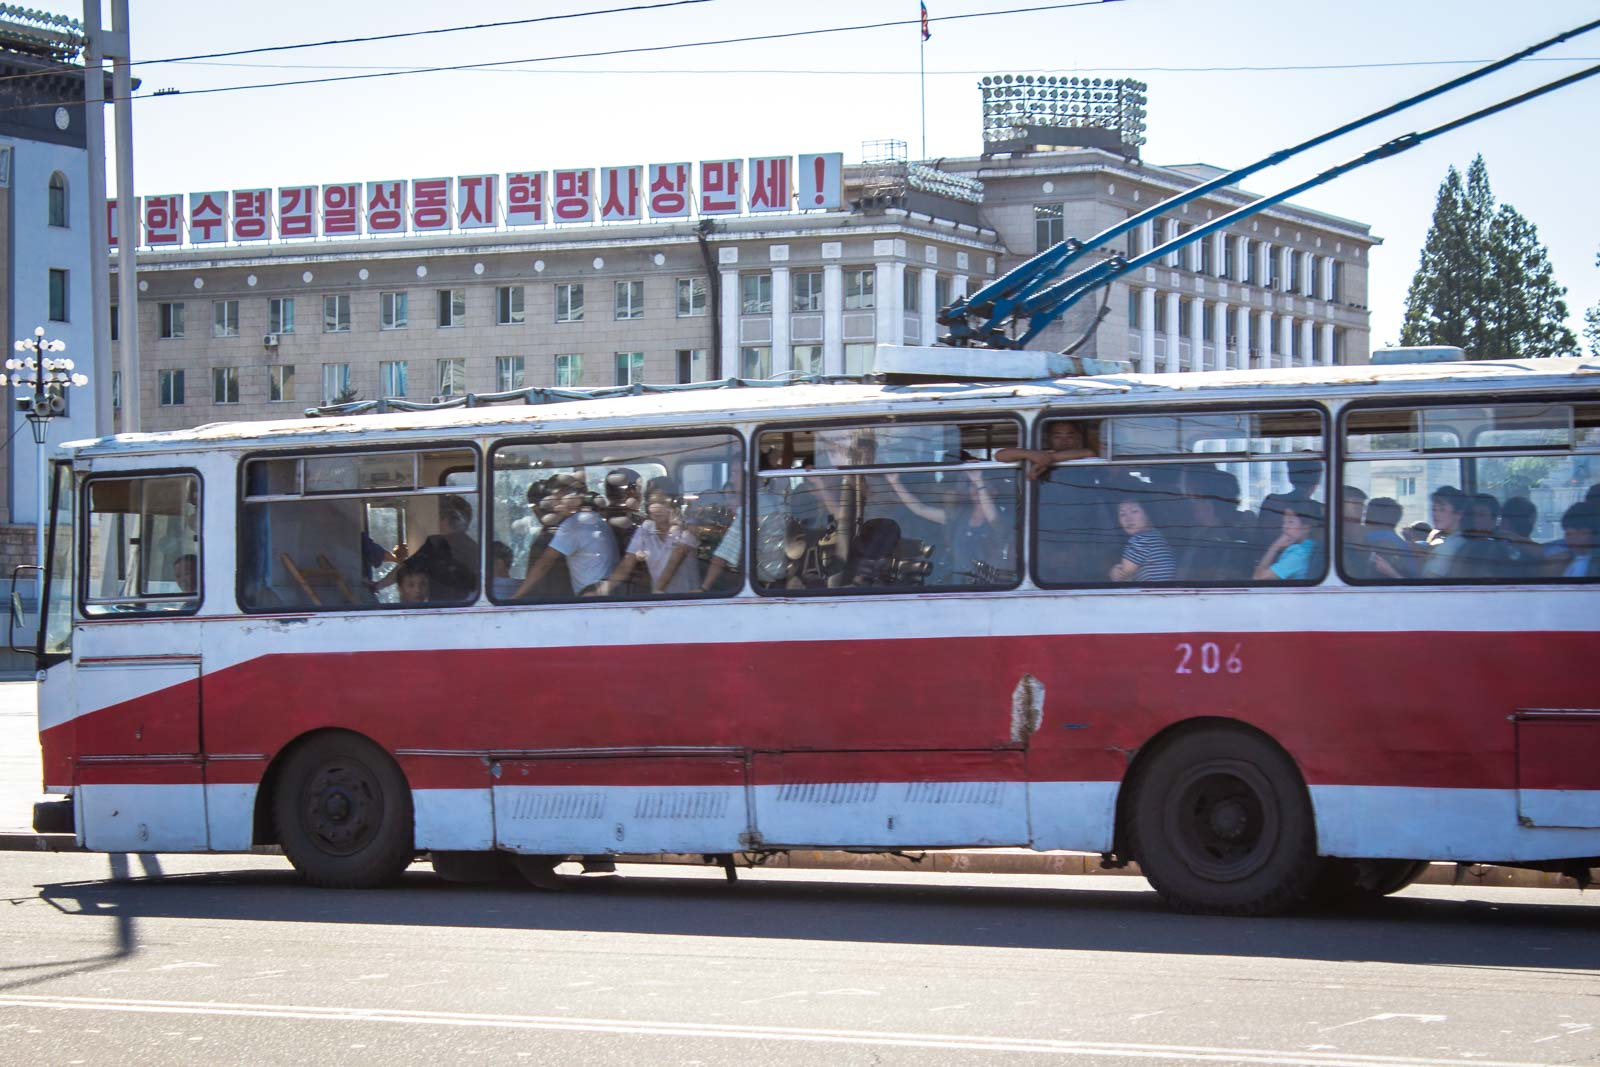 What is life like in North Korea?